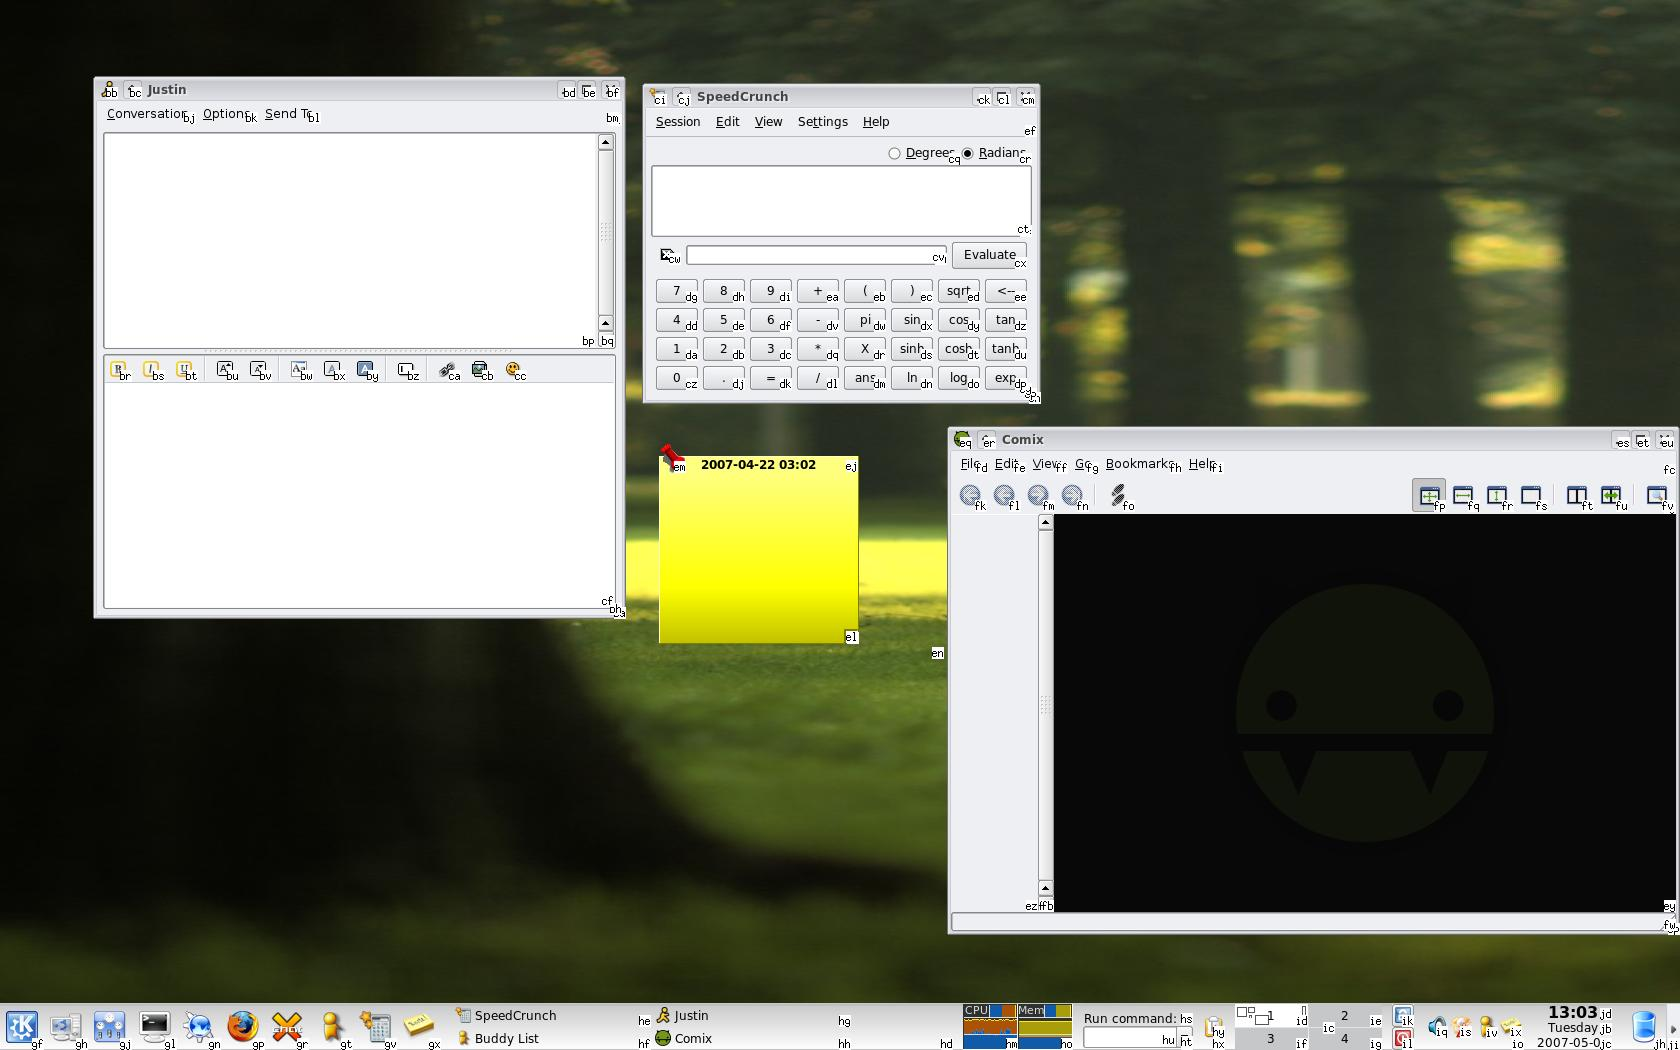 Windows Prototype of UIX in action